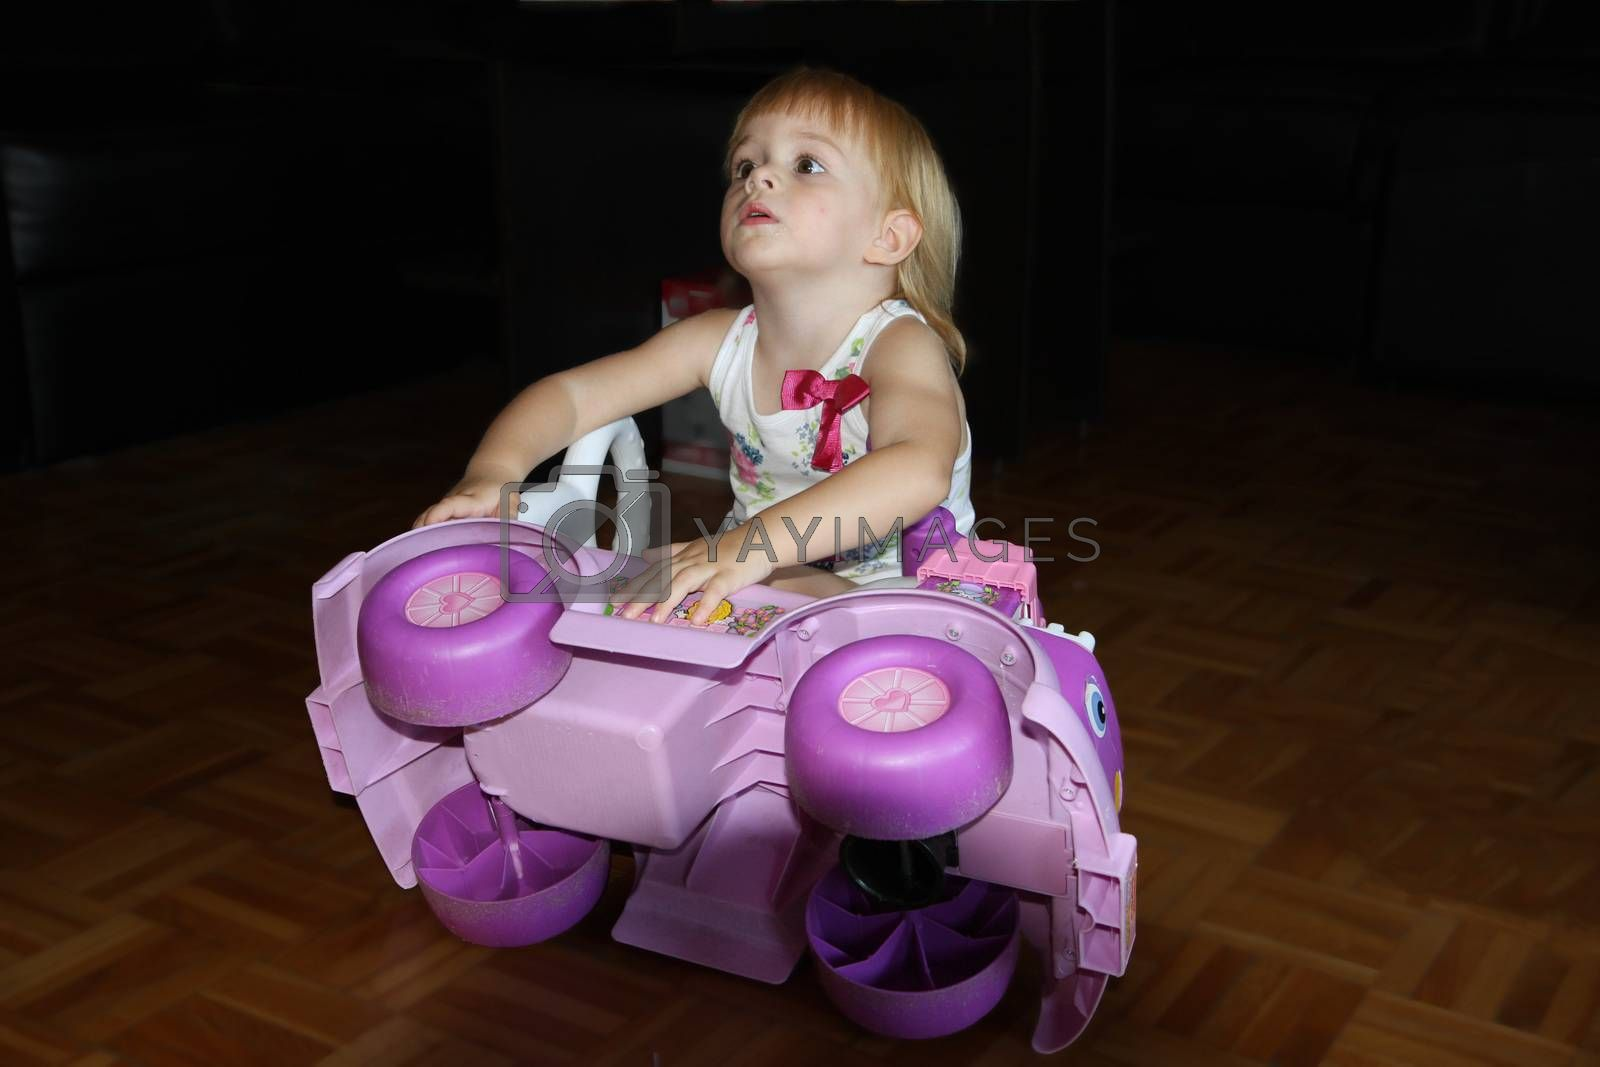 Cute young girl playing with plastic car on the floor